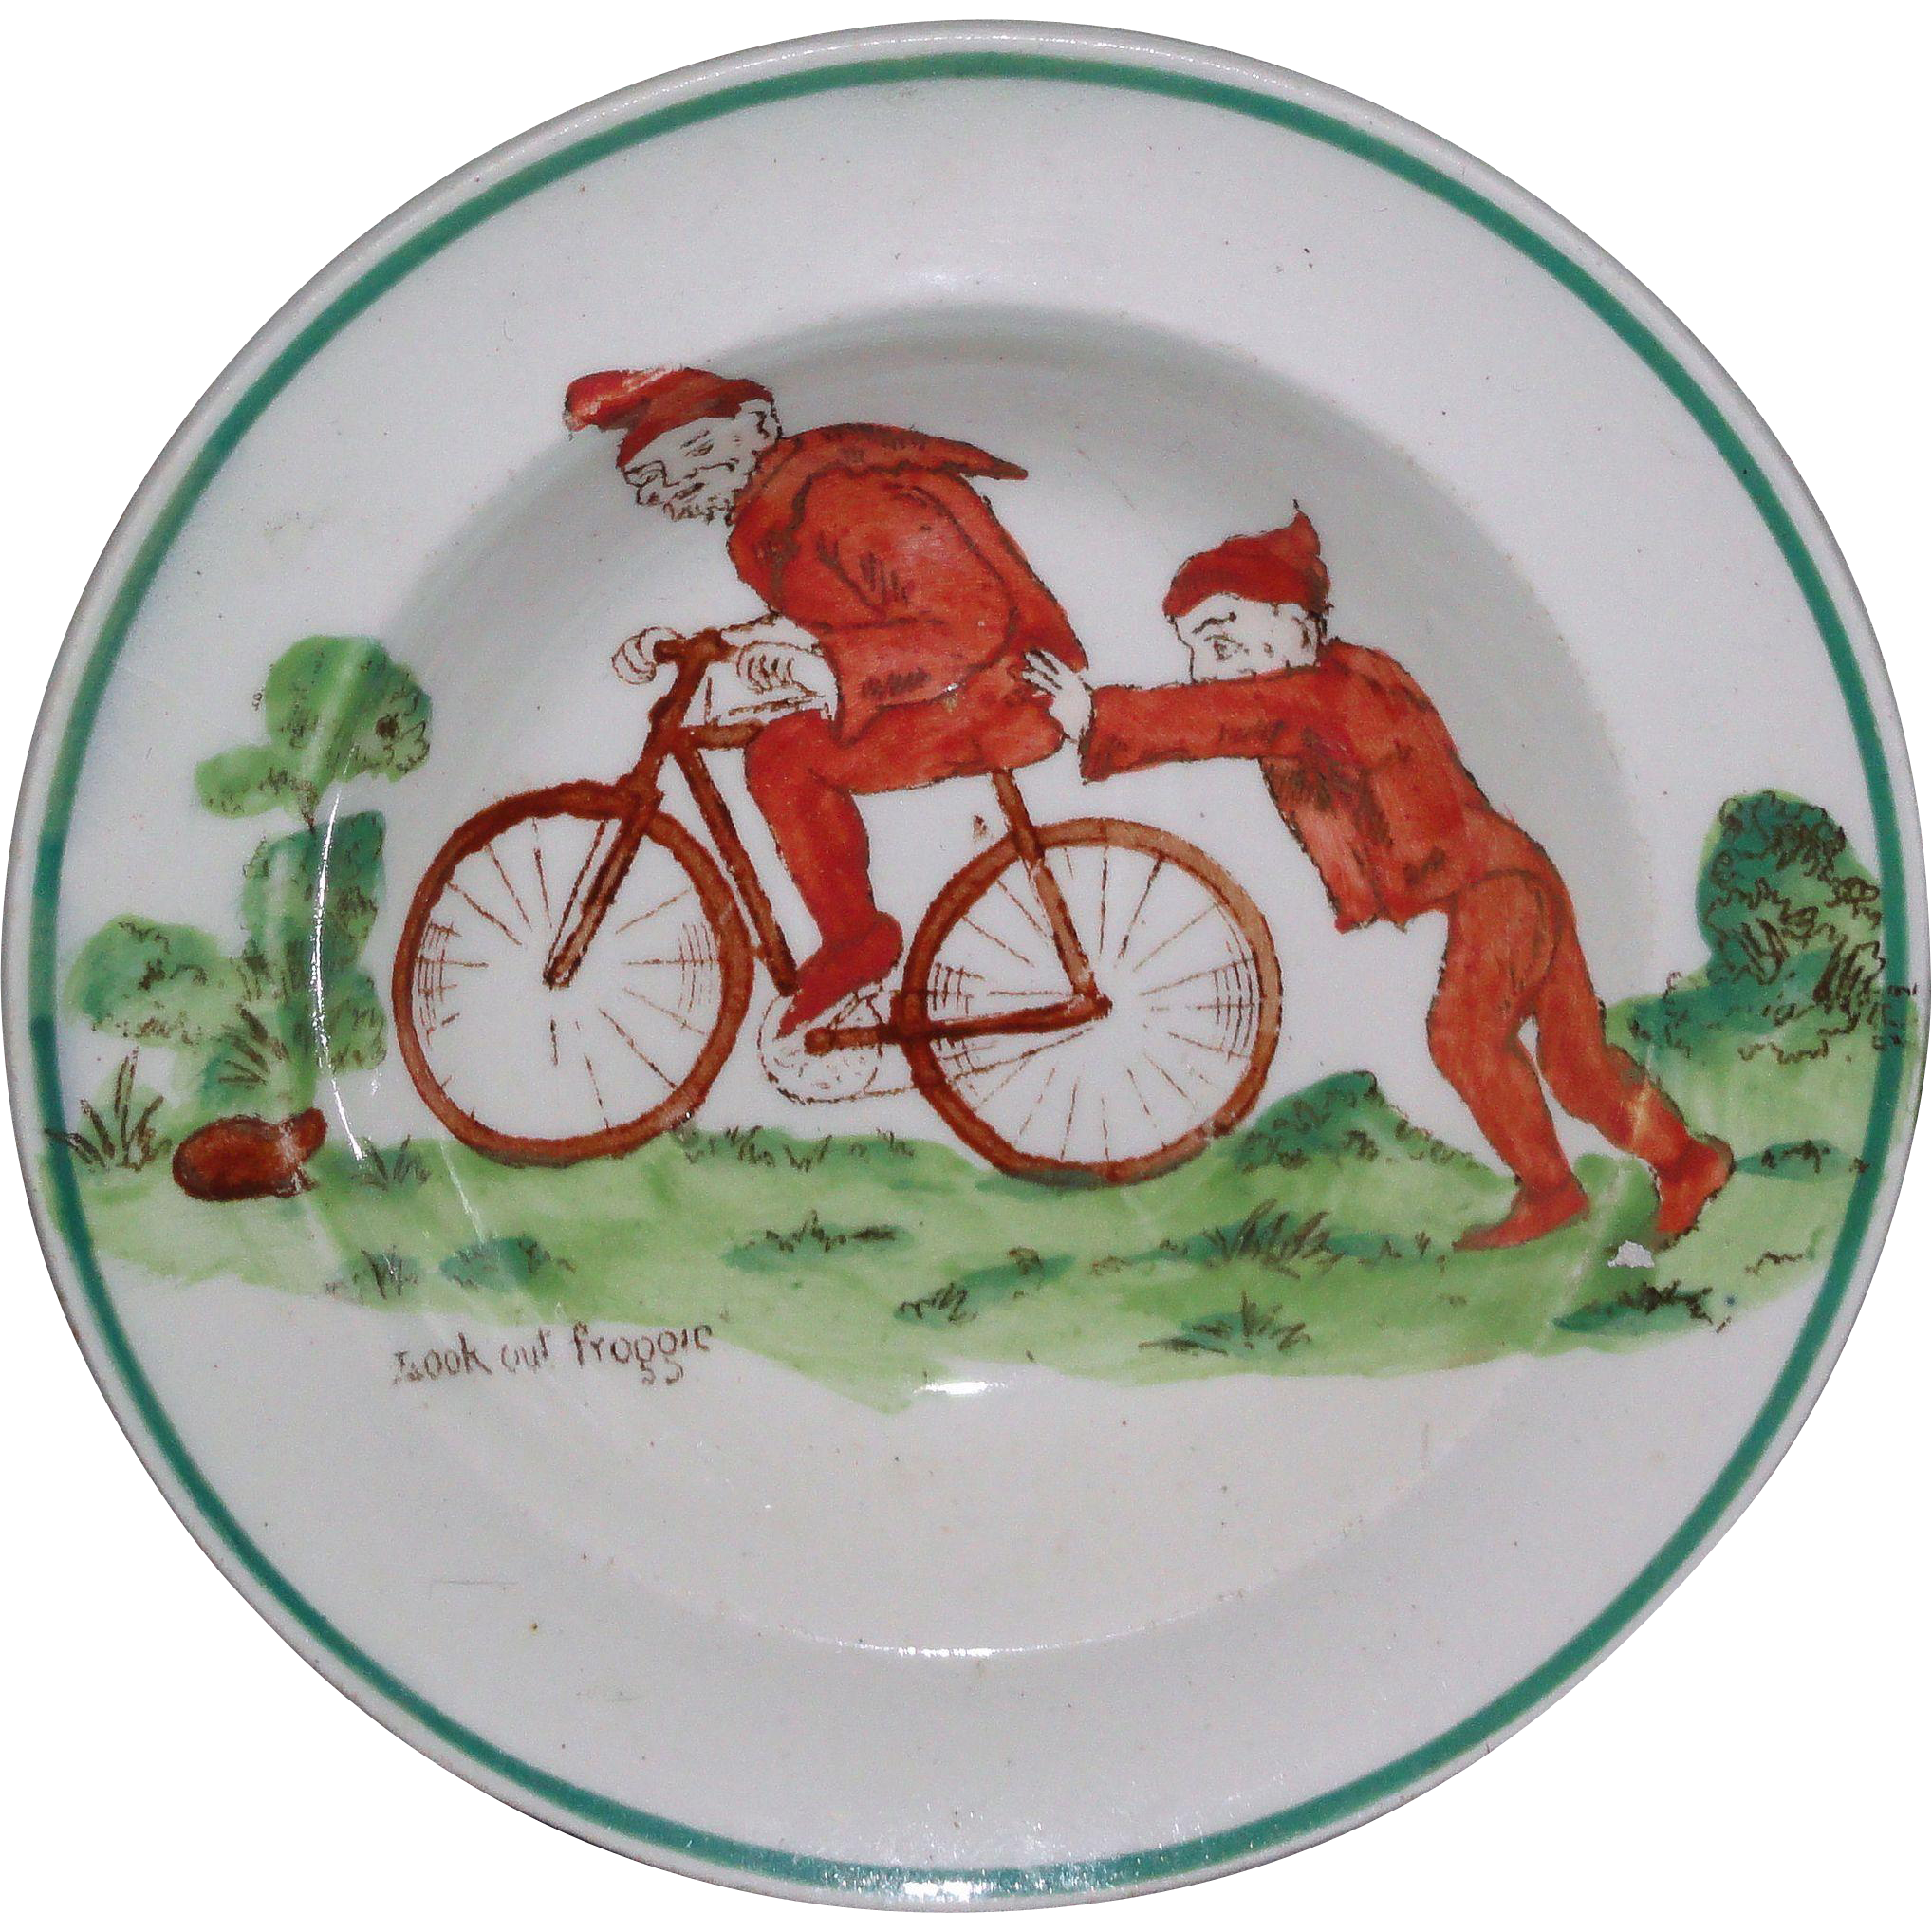 Rare Wedgwood Daisy Makeig-Jones Miniature Toy Cup Plate BROWNIES c1913 Bicycle Frog